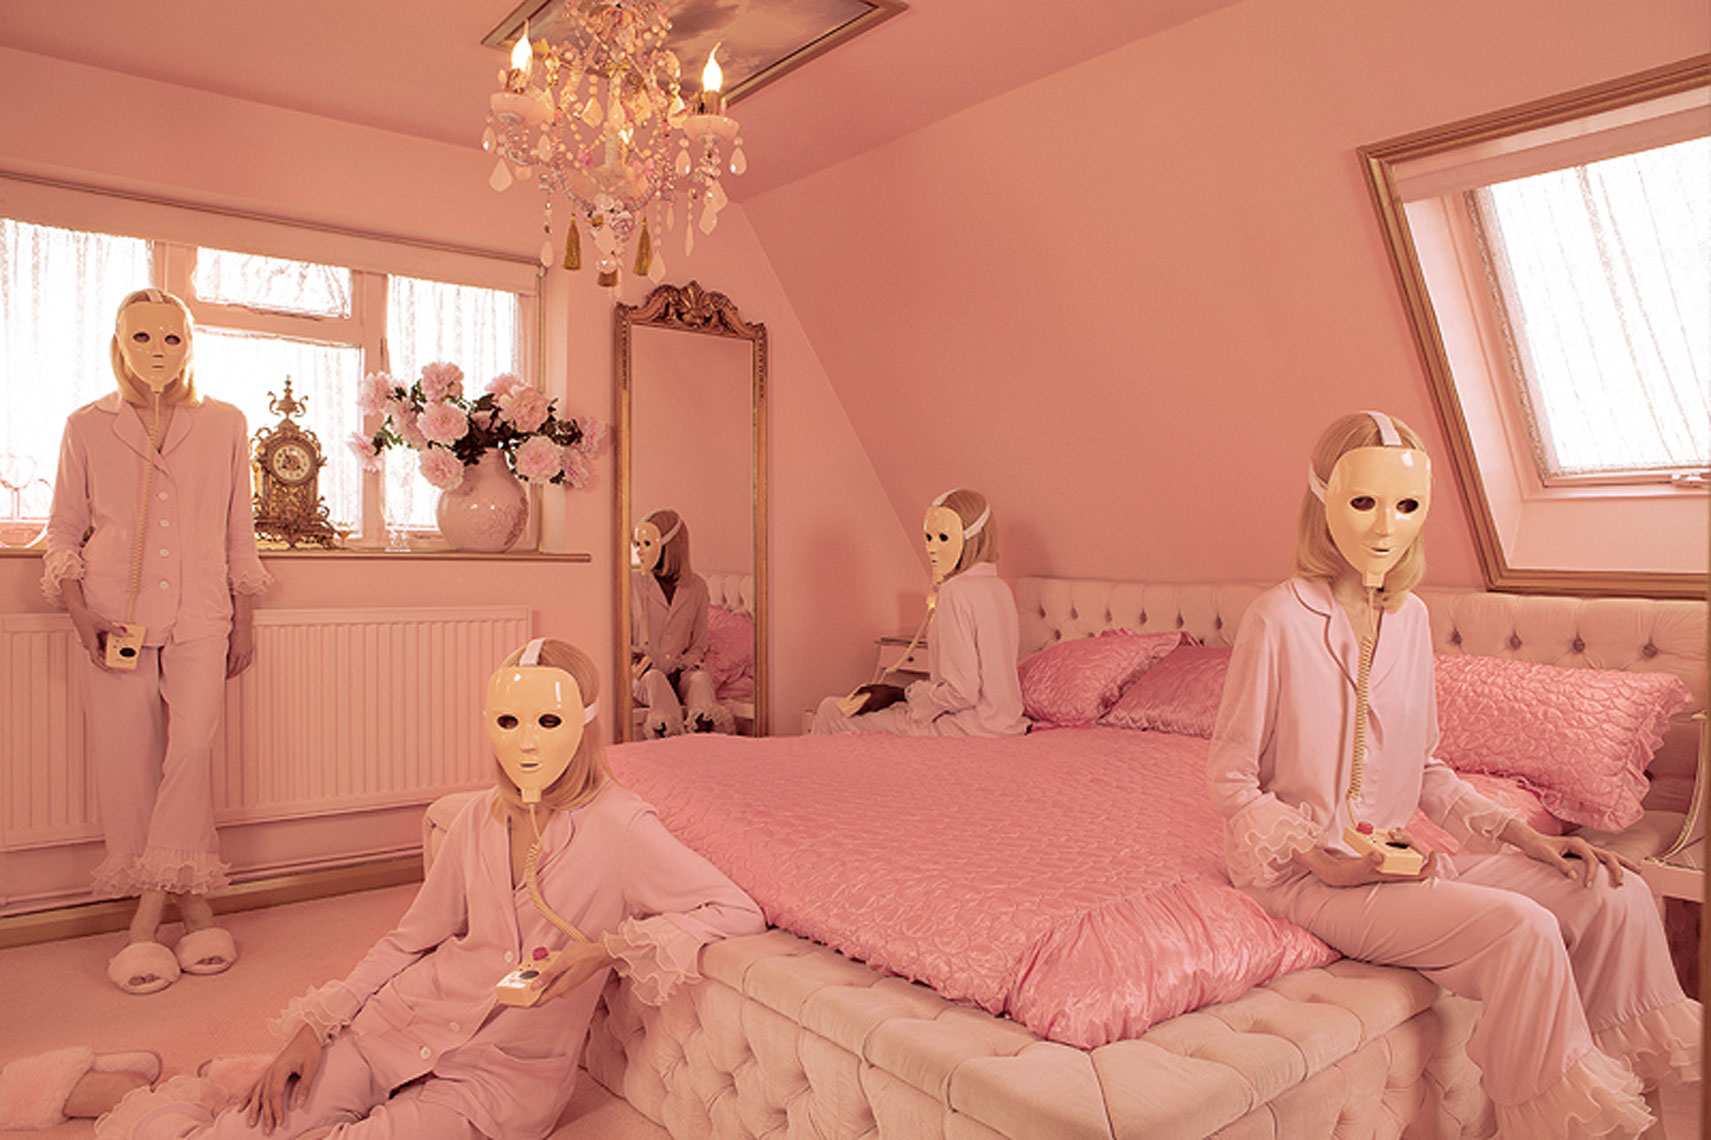 issie-gibbons-fashion-stylist-vogue-italia-eaton-house-pink-house-sleeper